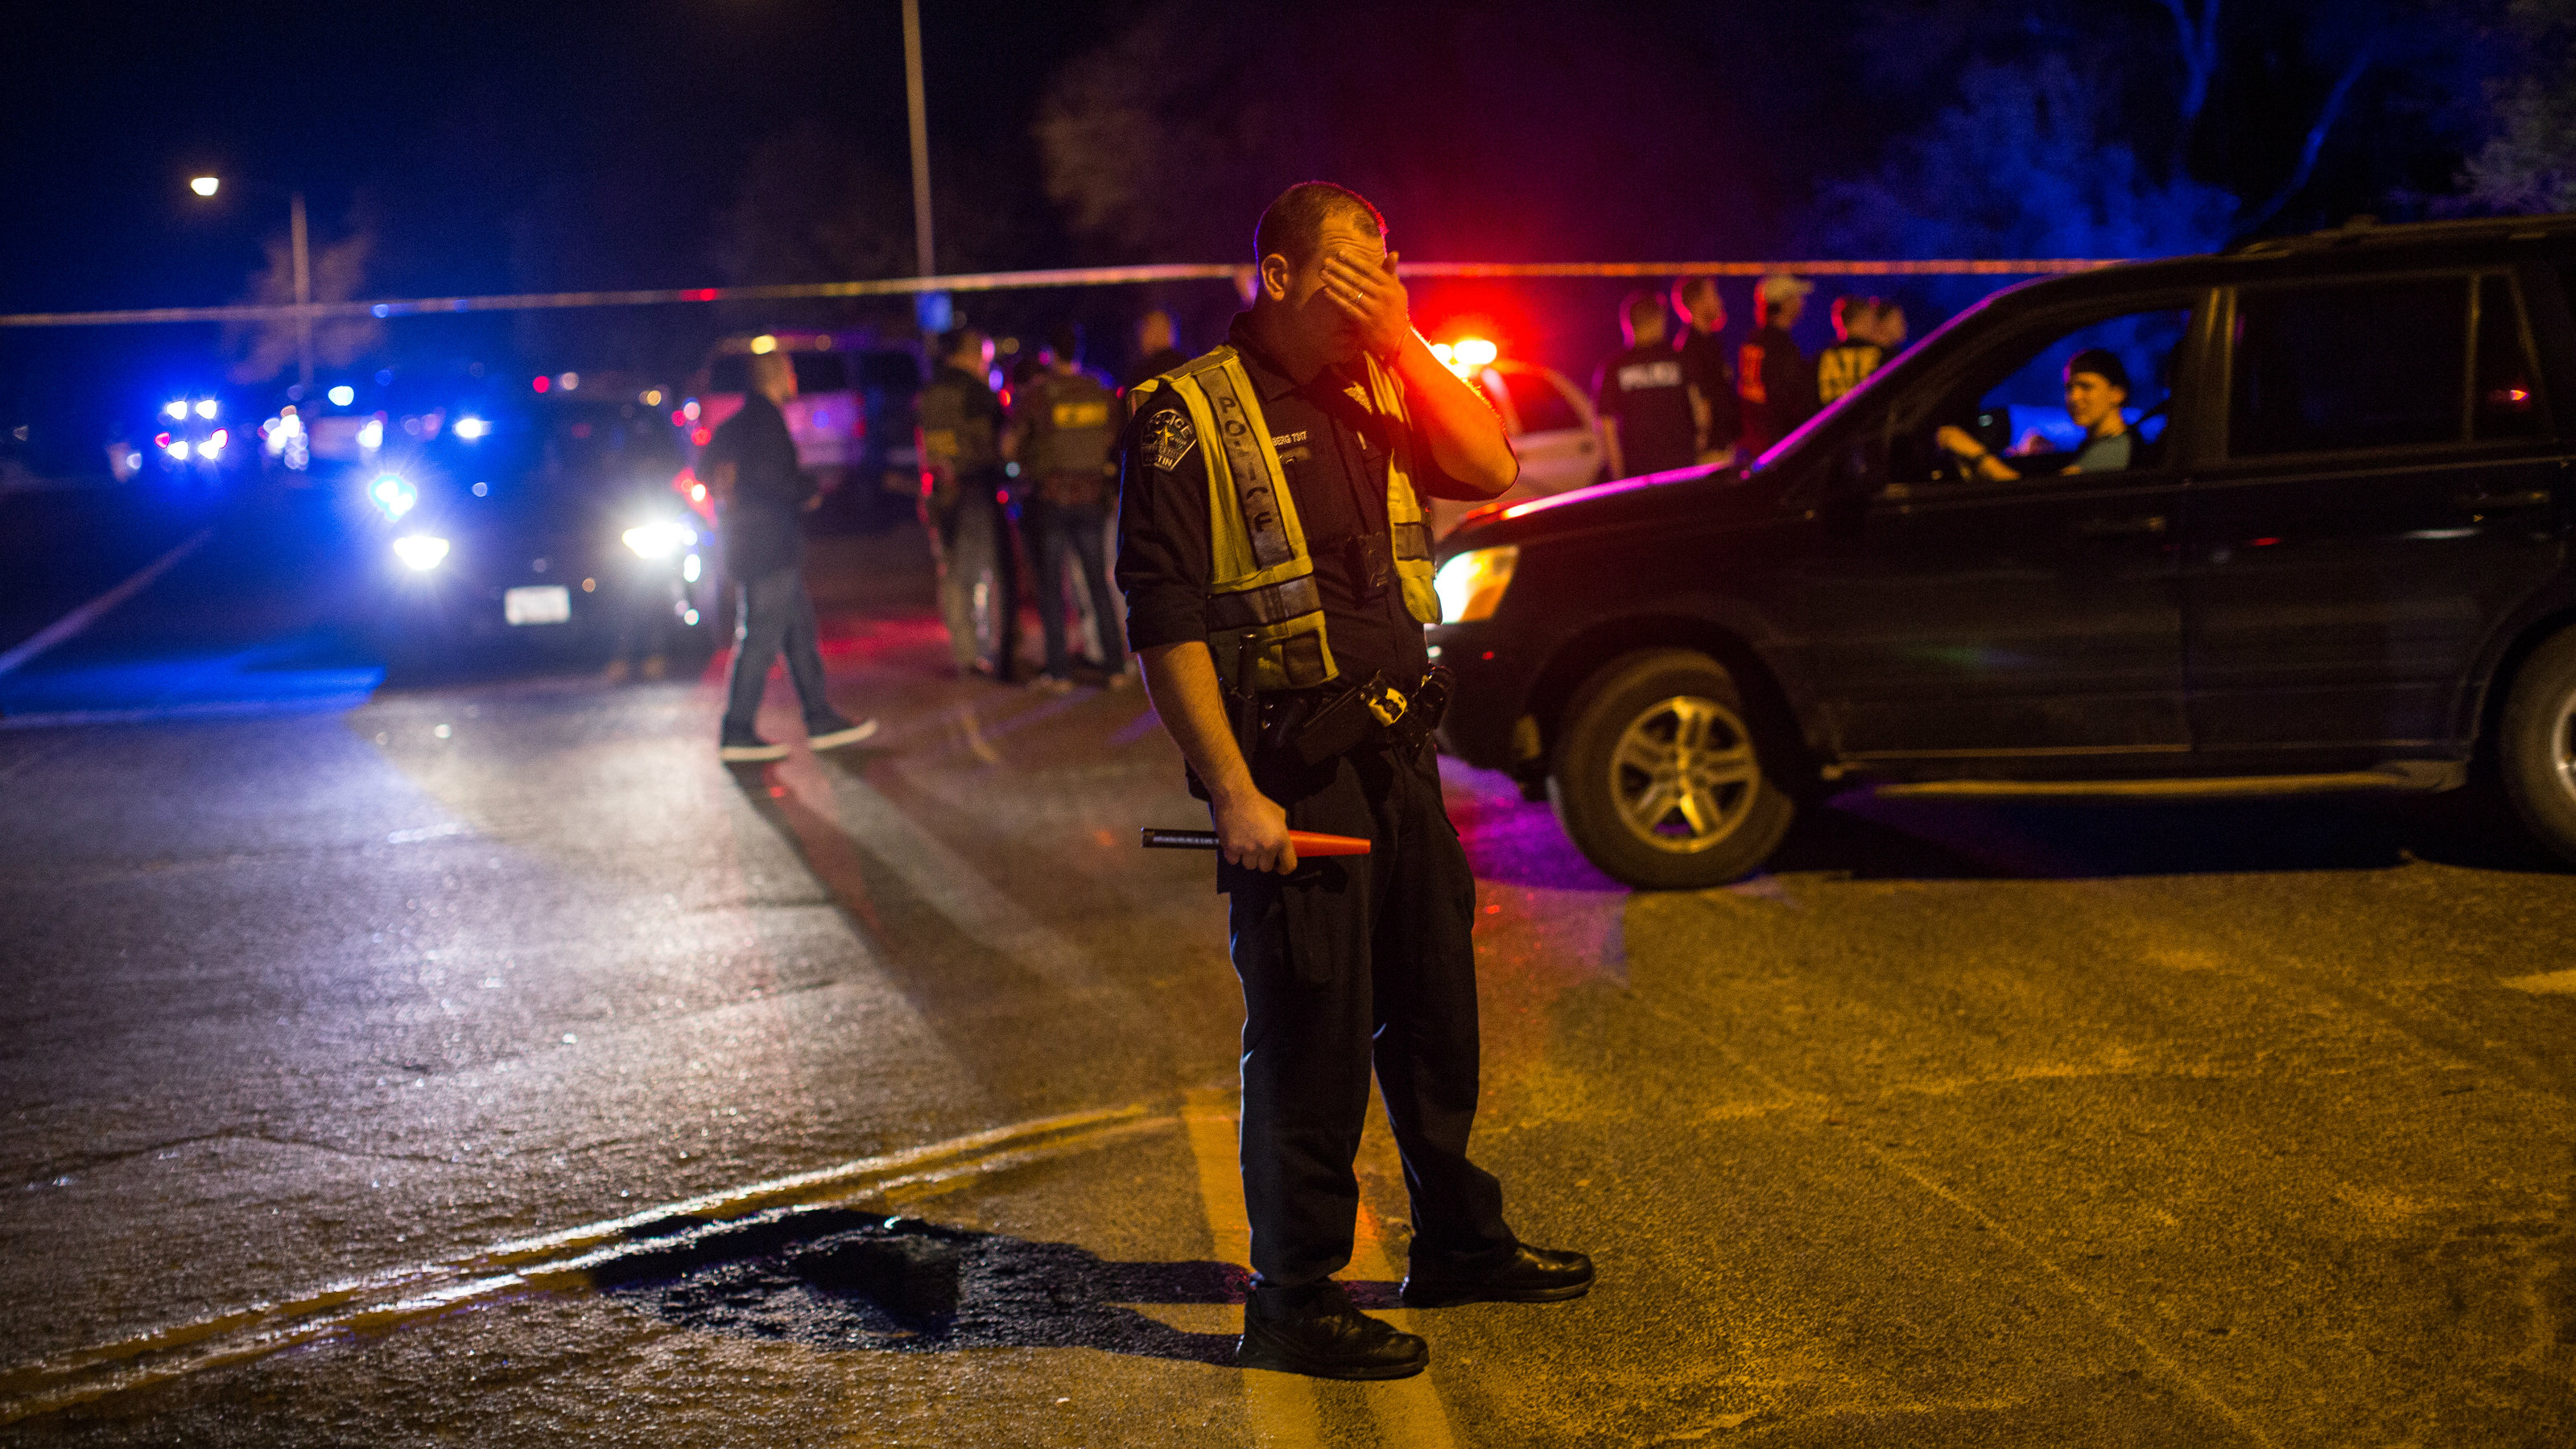 Police maintain a cordon near the site of an incident reported as an explosion in southwest Austin, Texas, U.S. March 18, 2018.